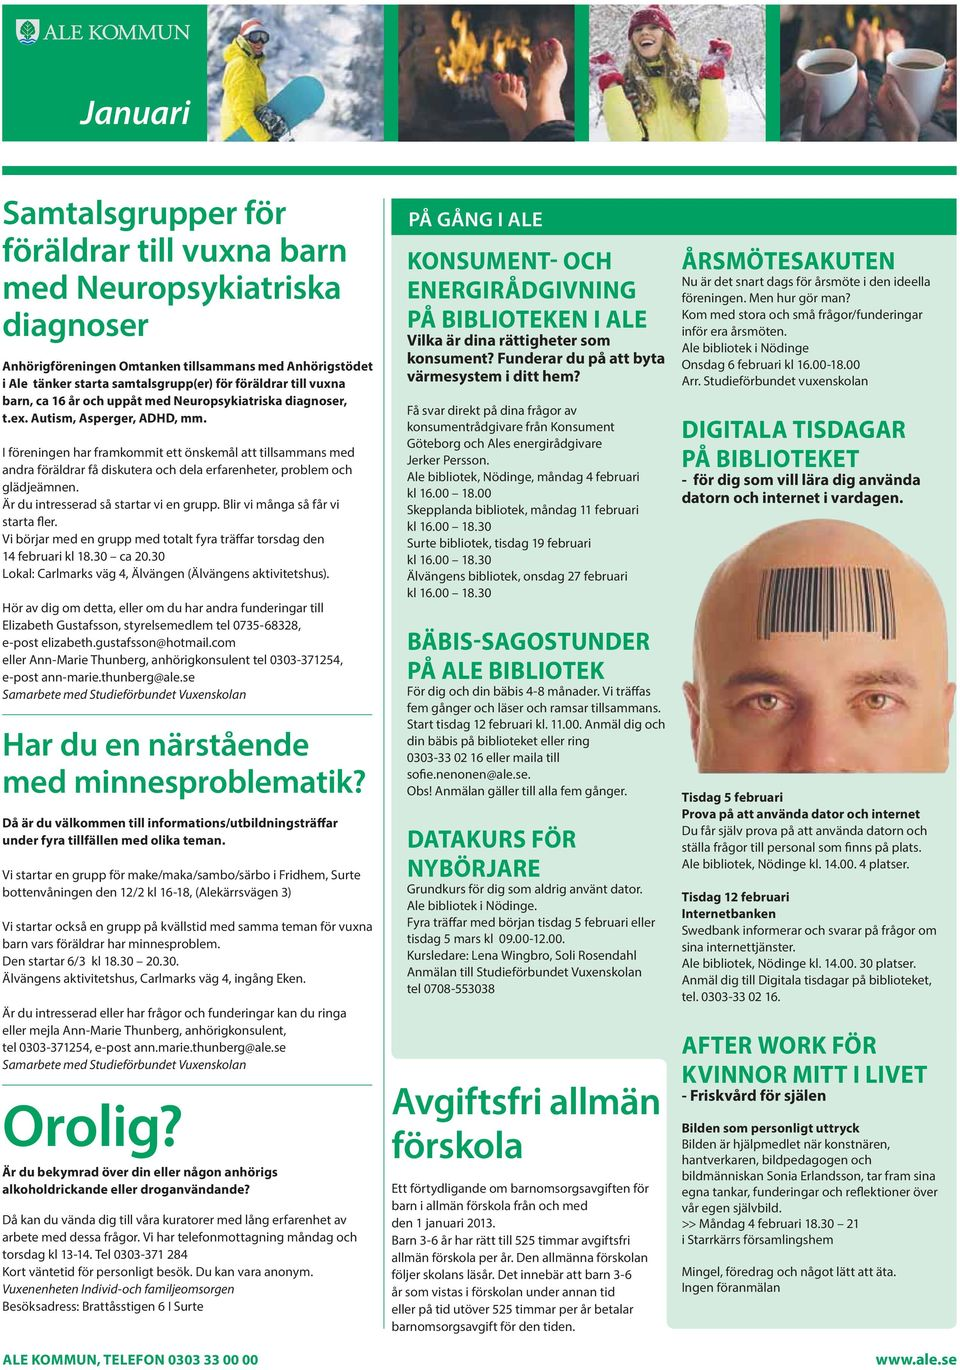 Skinnbo 235 Vstra Gtalands Ln, Nol - patient-survey.net